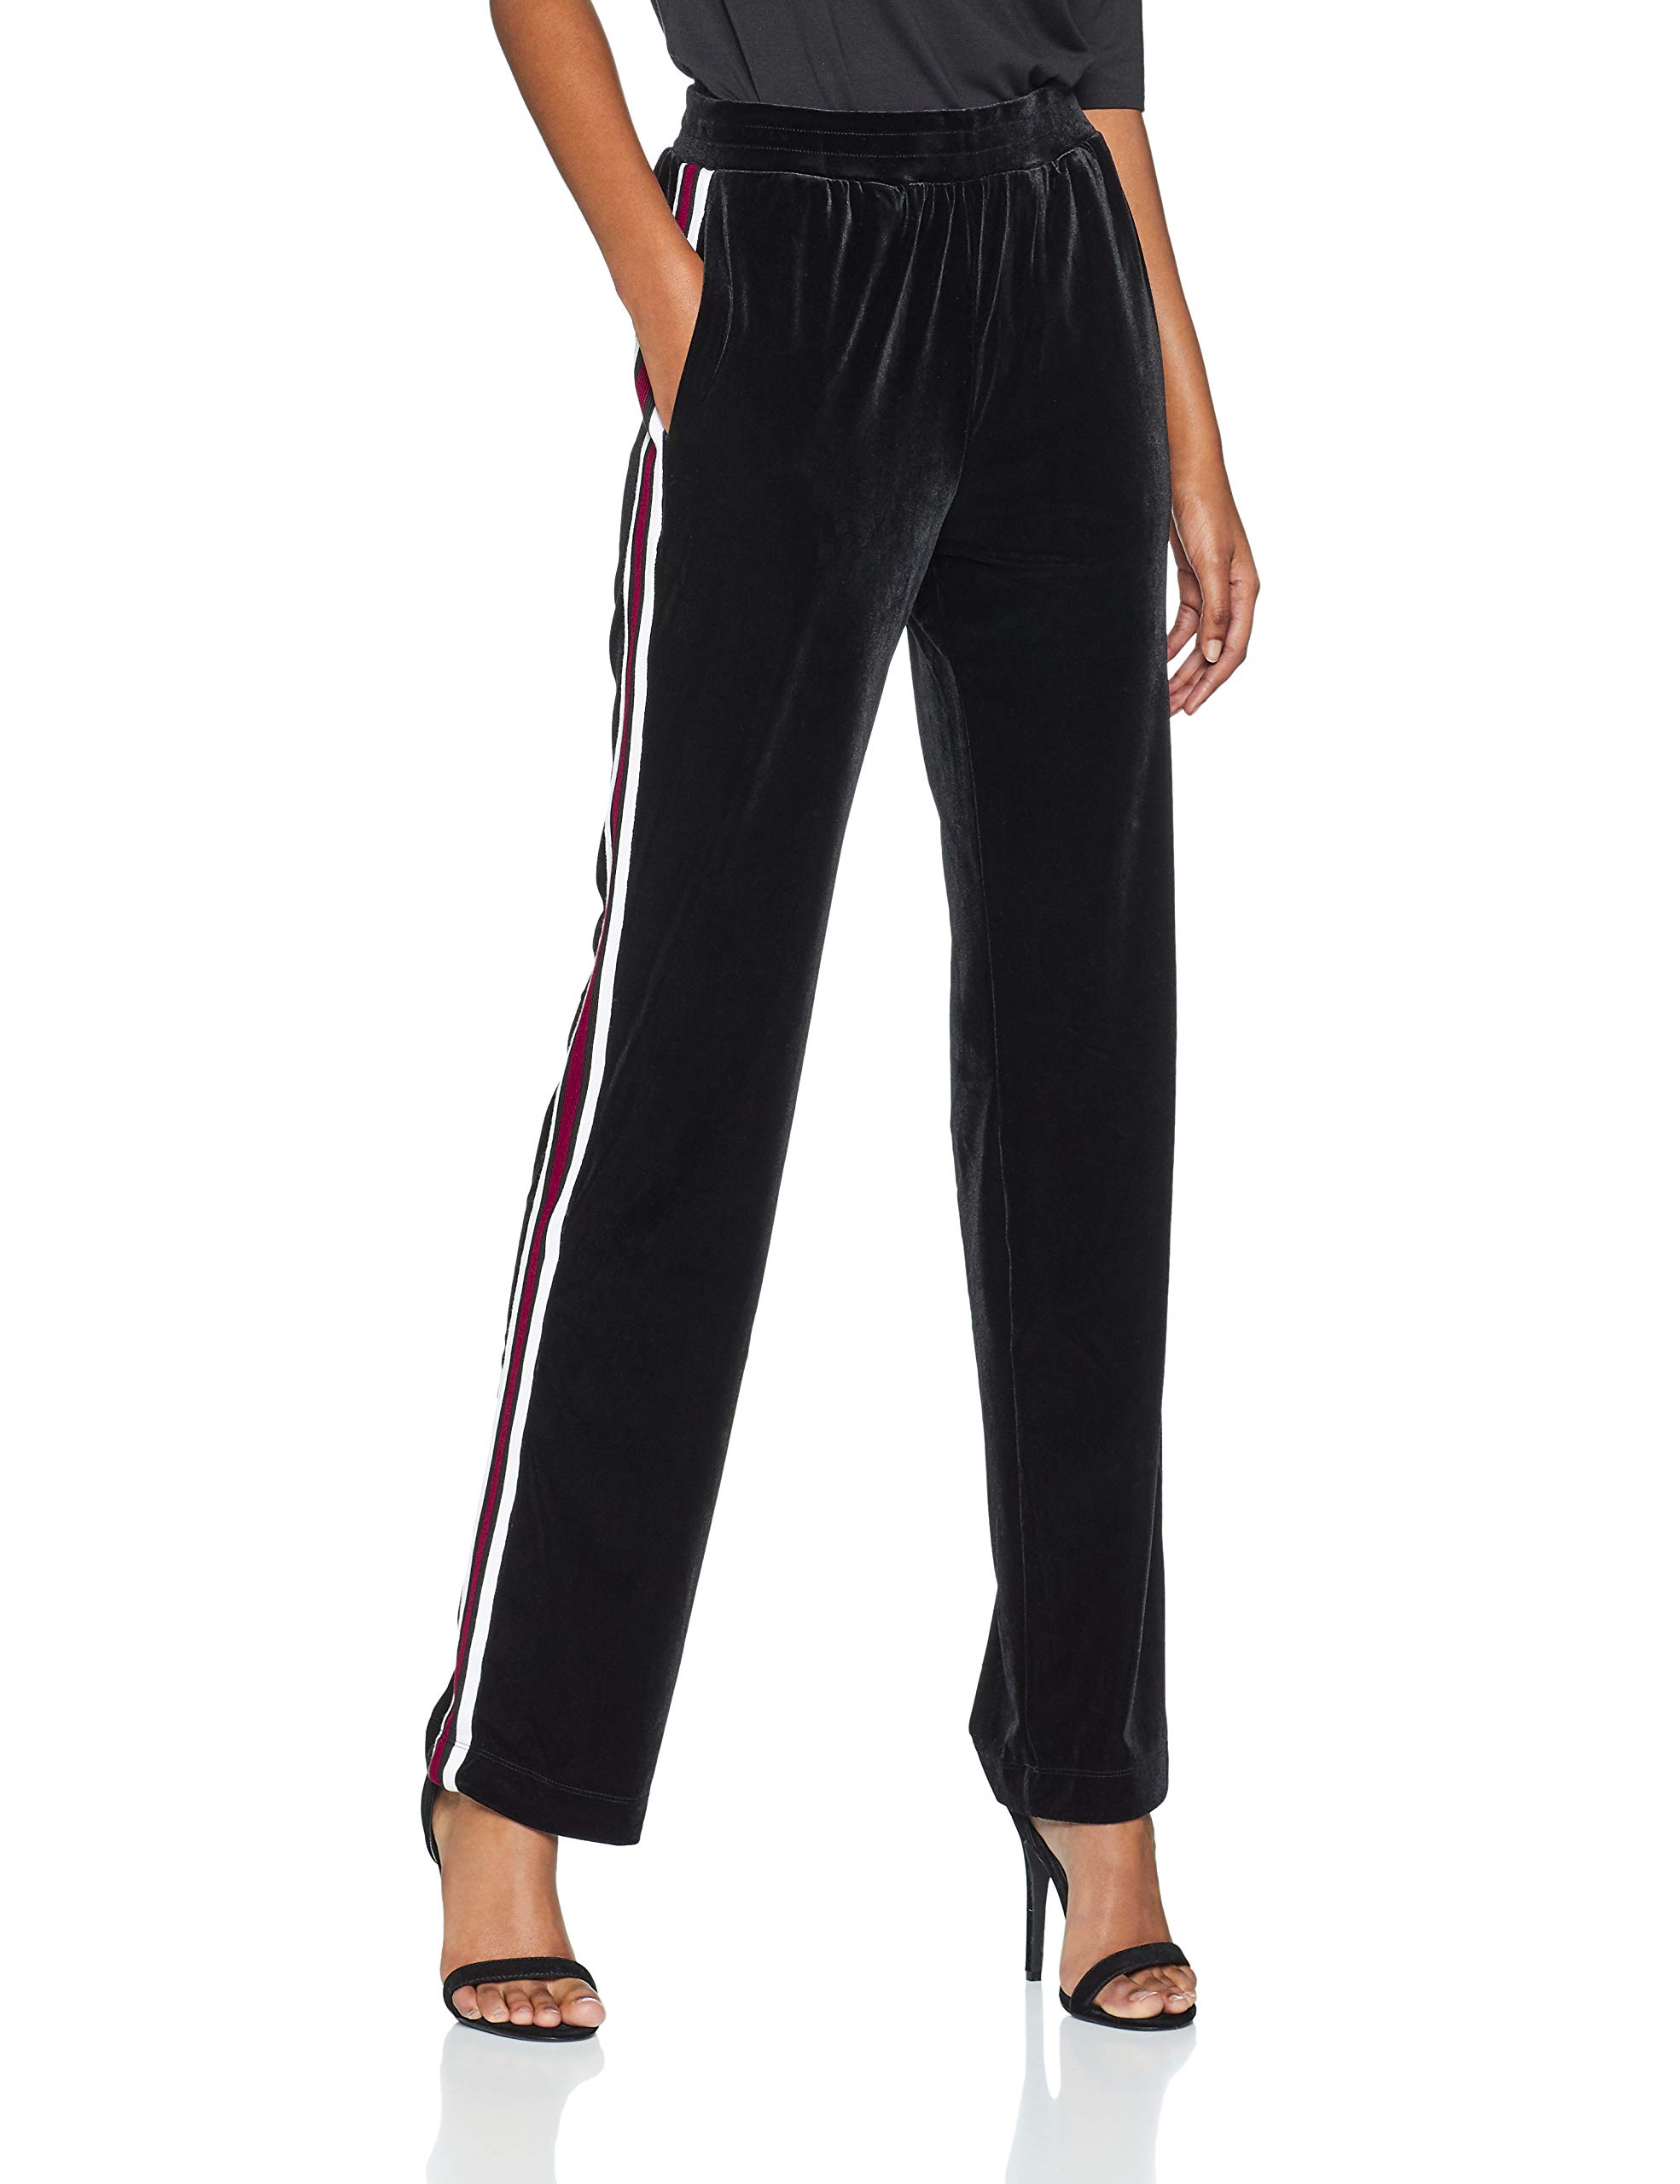 A996 JblkUniquetaille PantalonNoirjet FabricantSmallFemme Black Rina Guess xQedoErBWC